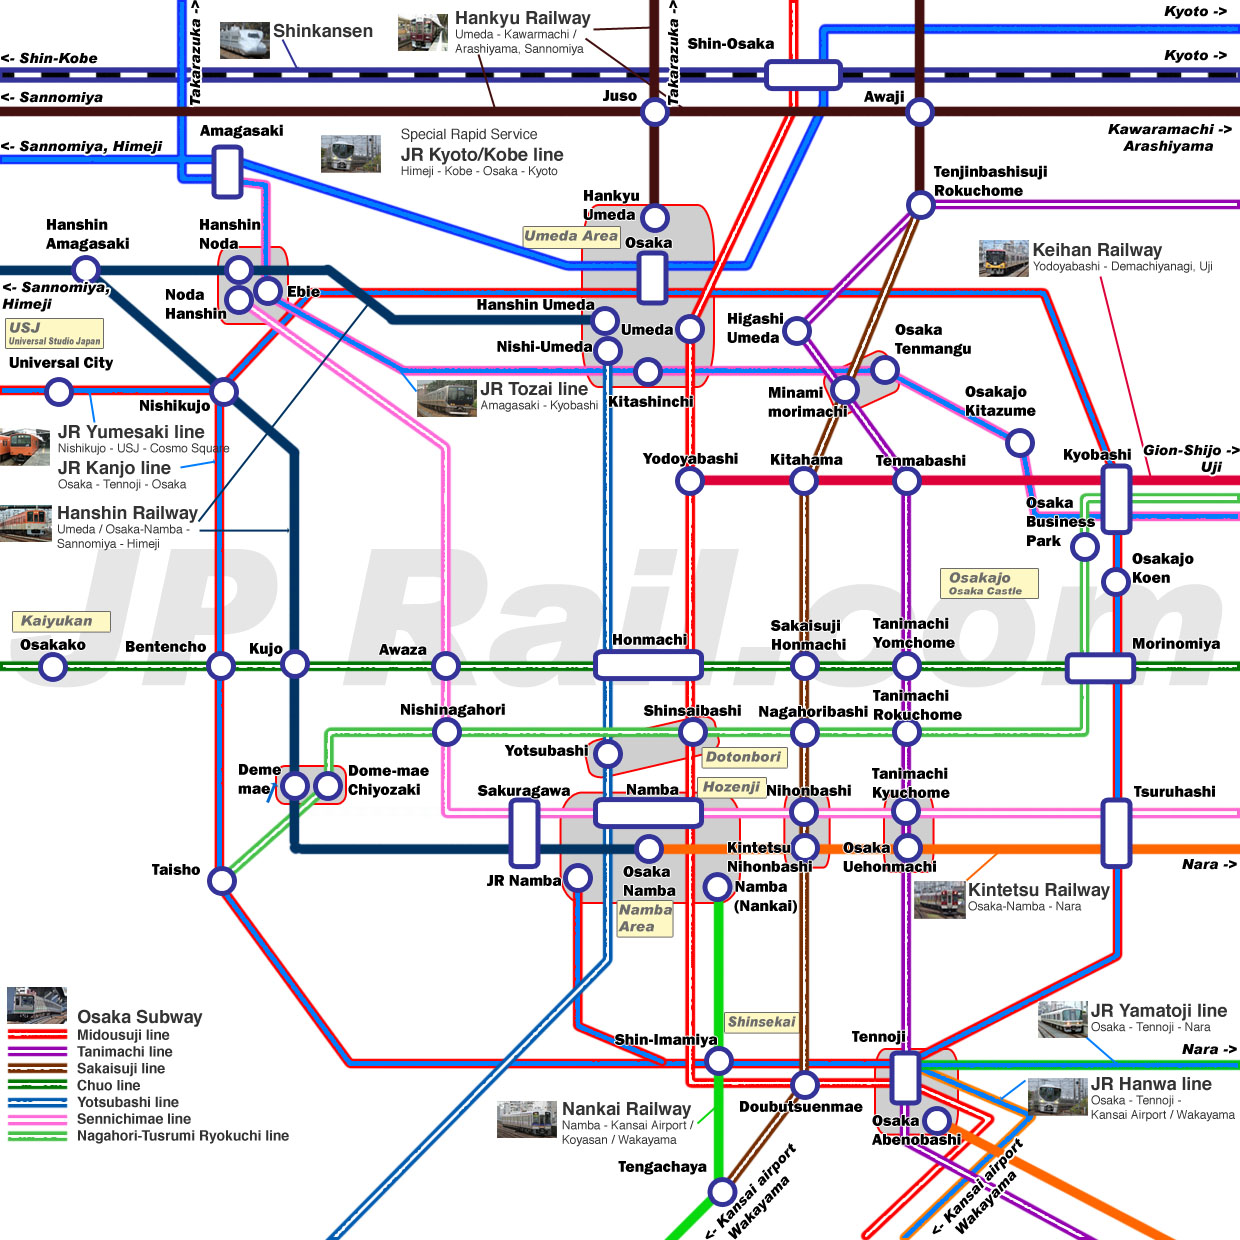 Guide to take trains in Osaka How to choose the best route by train